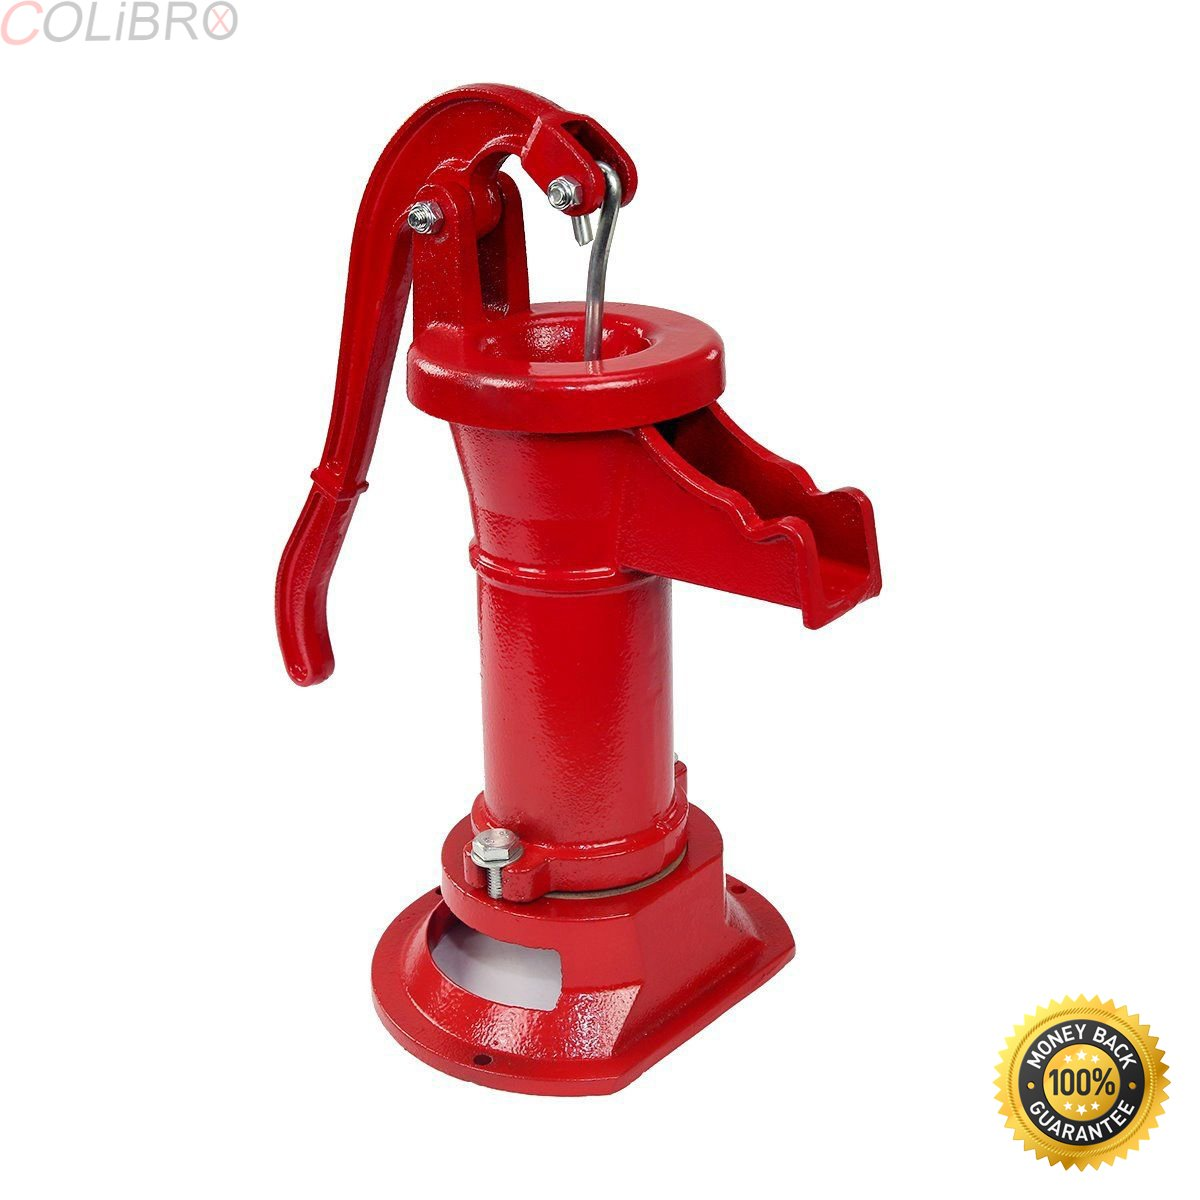 COLIBROX--New Antique Style Heavy Duty Cast Iron Red Well Hand Operated Pitcher Pump 25 Ft. Designed for rugged long life service All parts are made from close grain cast iron for optimum strength. by COLIBROX (Image #1)